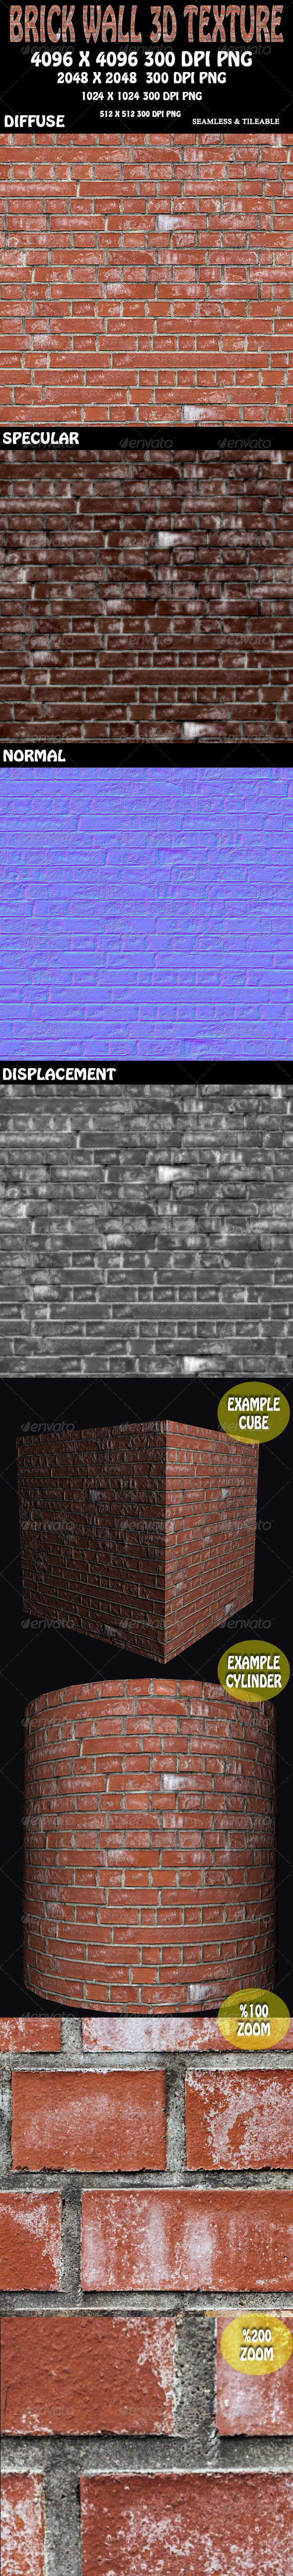 Brick Wall 3D Texture - 3DOcean Item for Sale